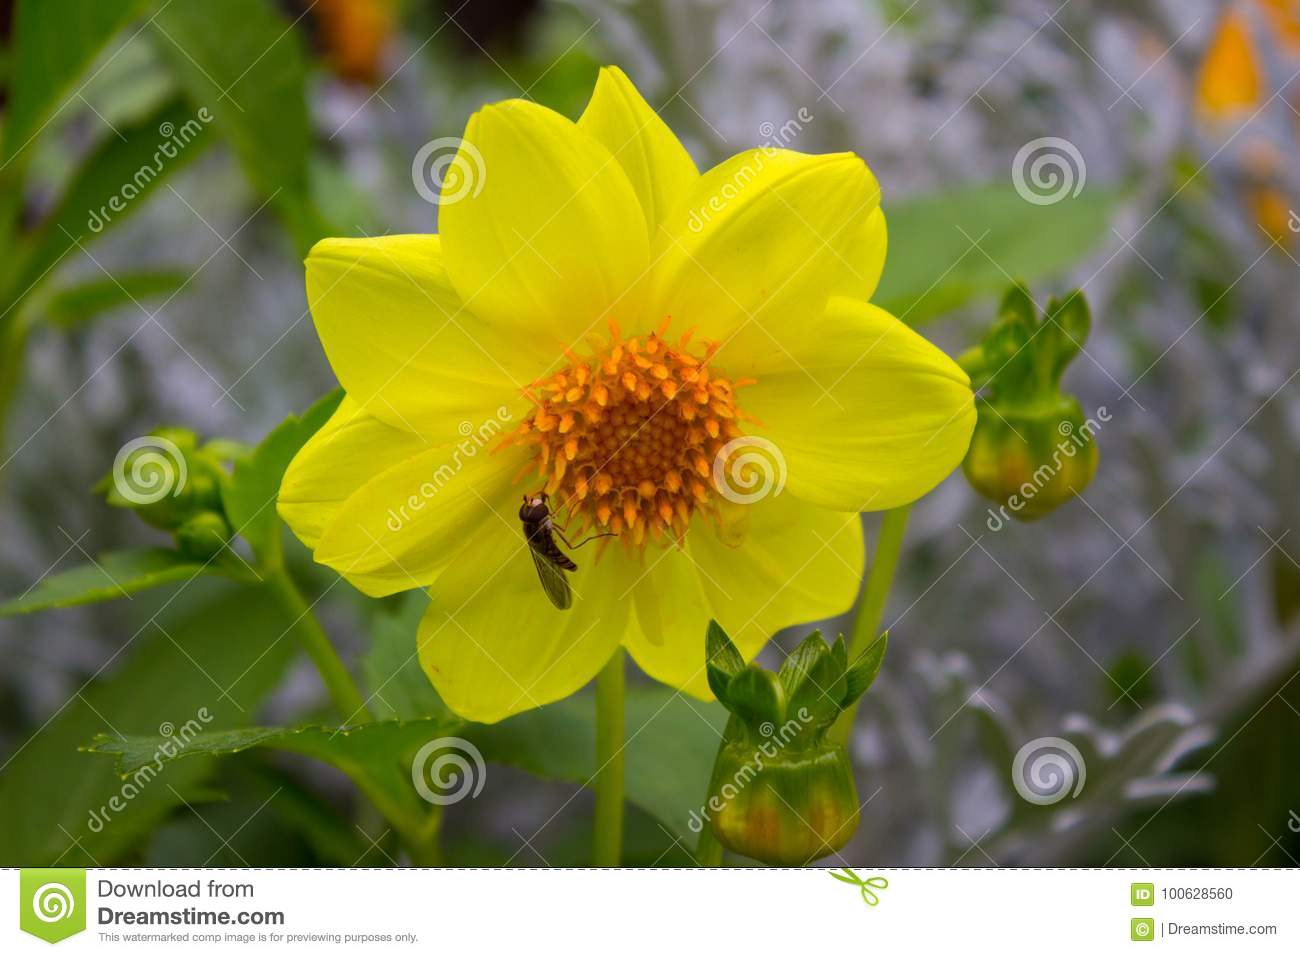 Yellow dahlia flower on background of different types of flowers yellow dahlia flower on background of different types of flowers mightylinksfo